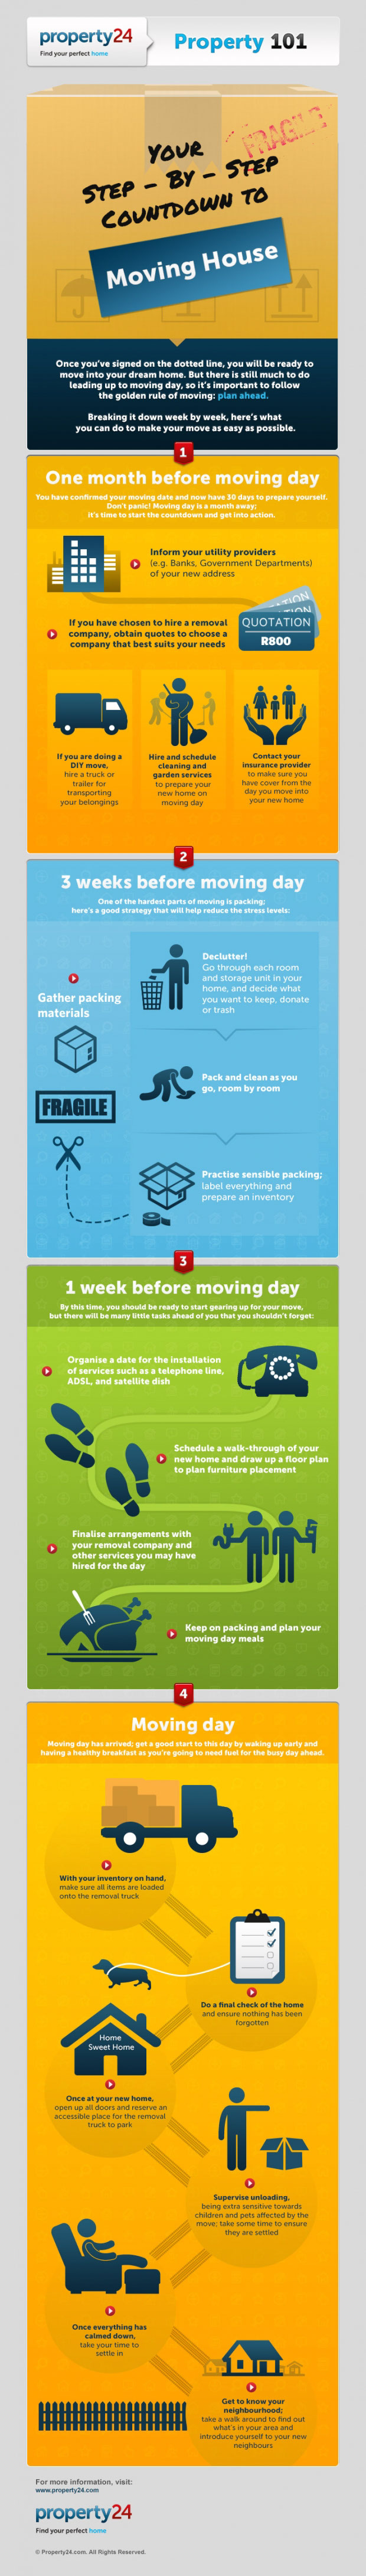 Moving out Preparations-Infographic